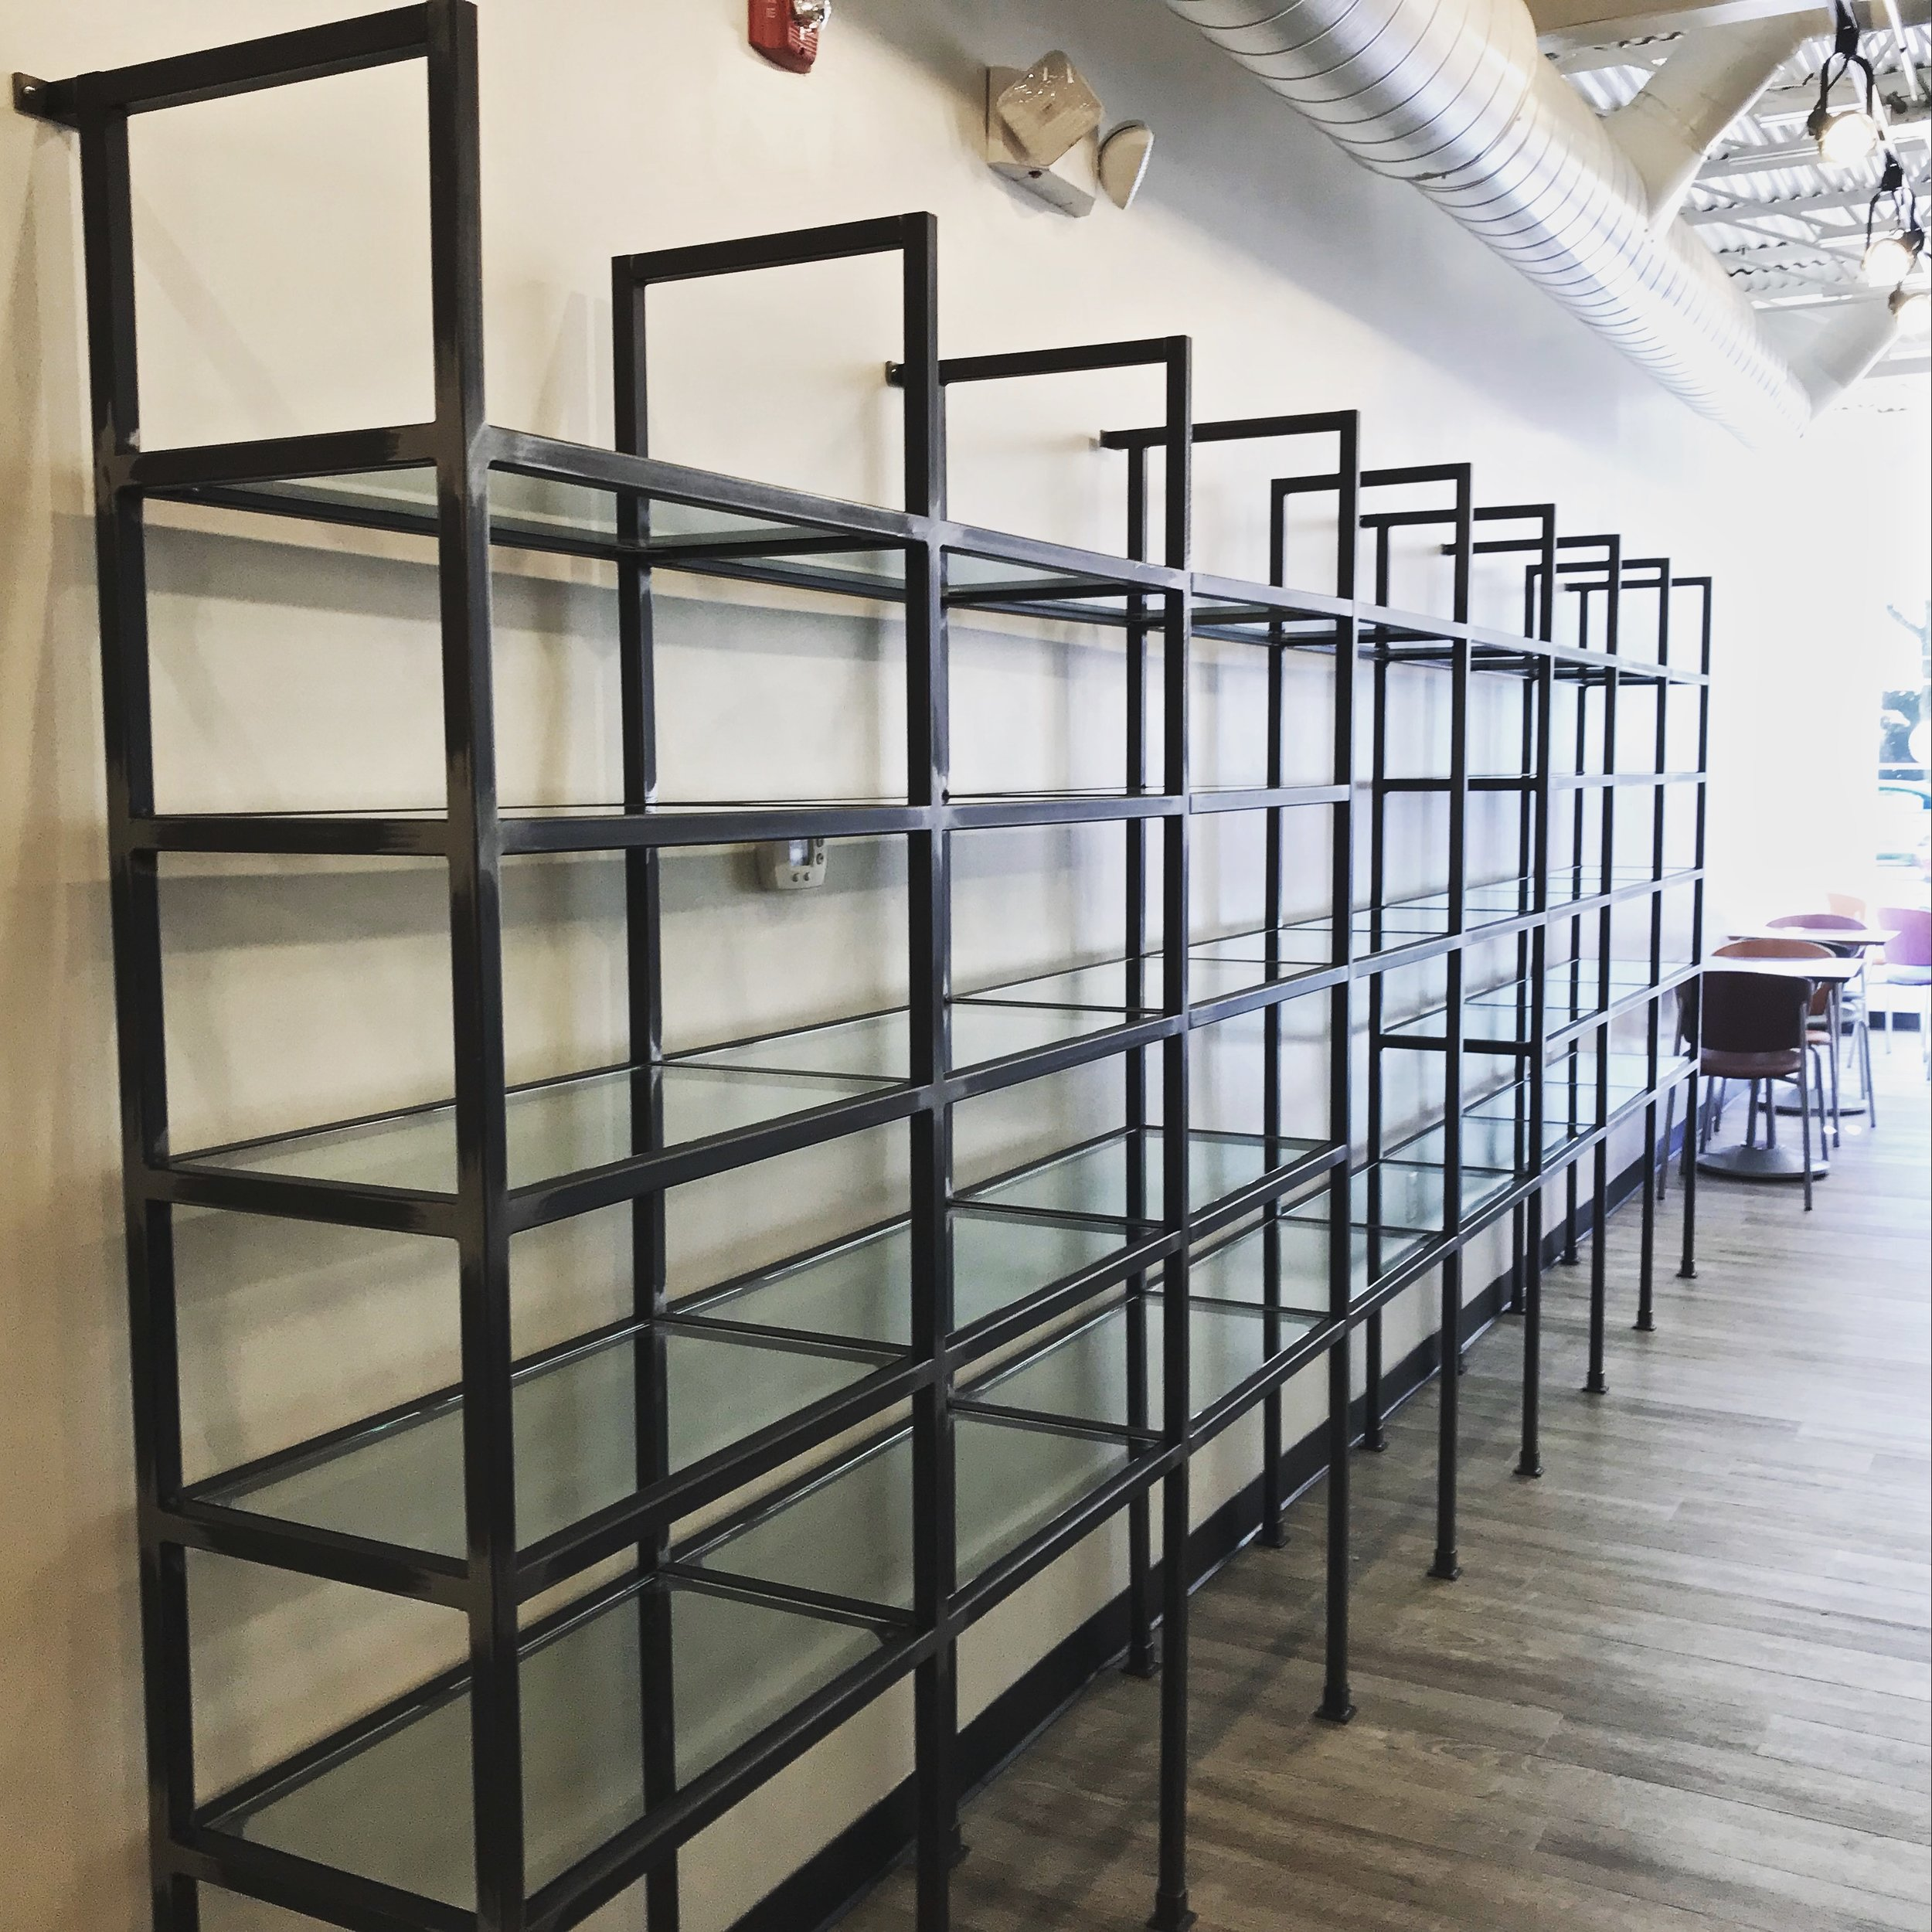 Custom Metal/Glass Shelving Designed by elizabeth barrett design for Birmingham Chocolates